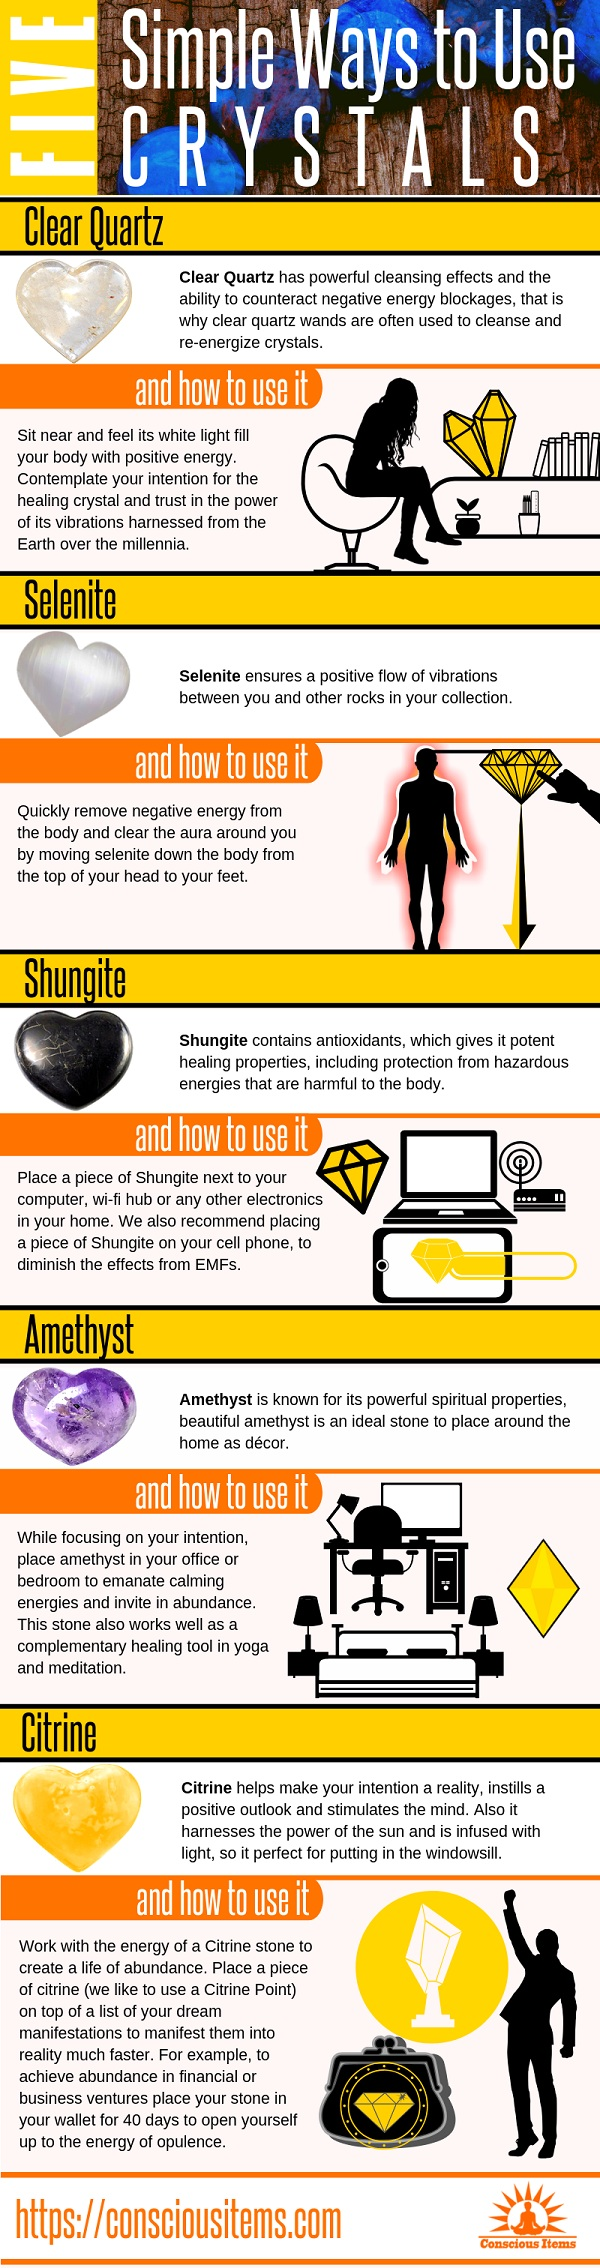 5 Simple Ways to Use Crystals